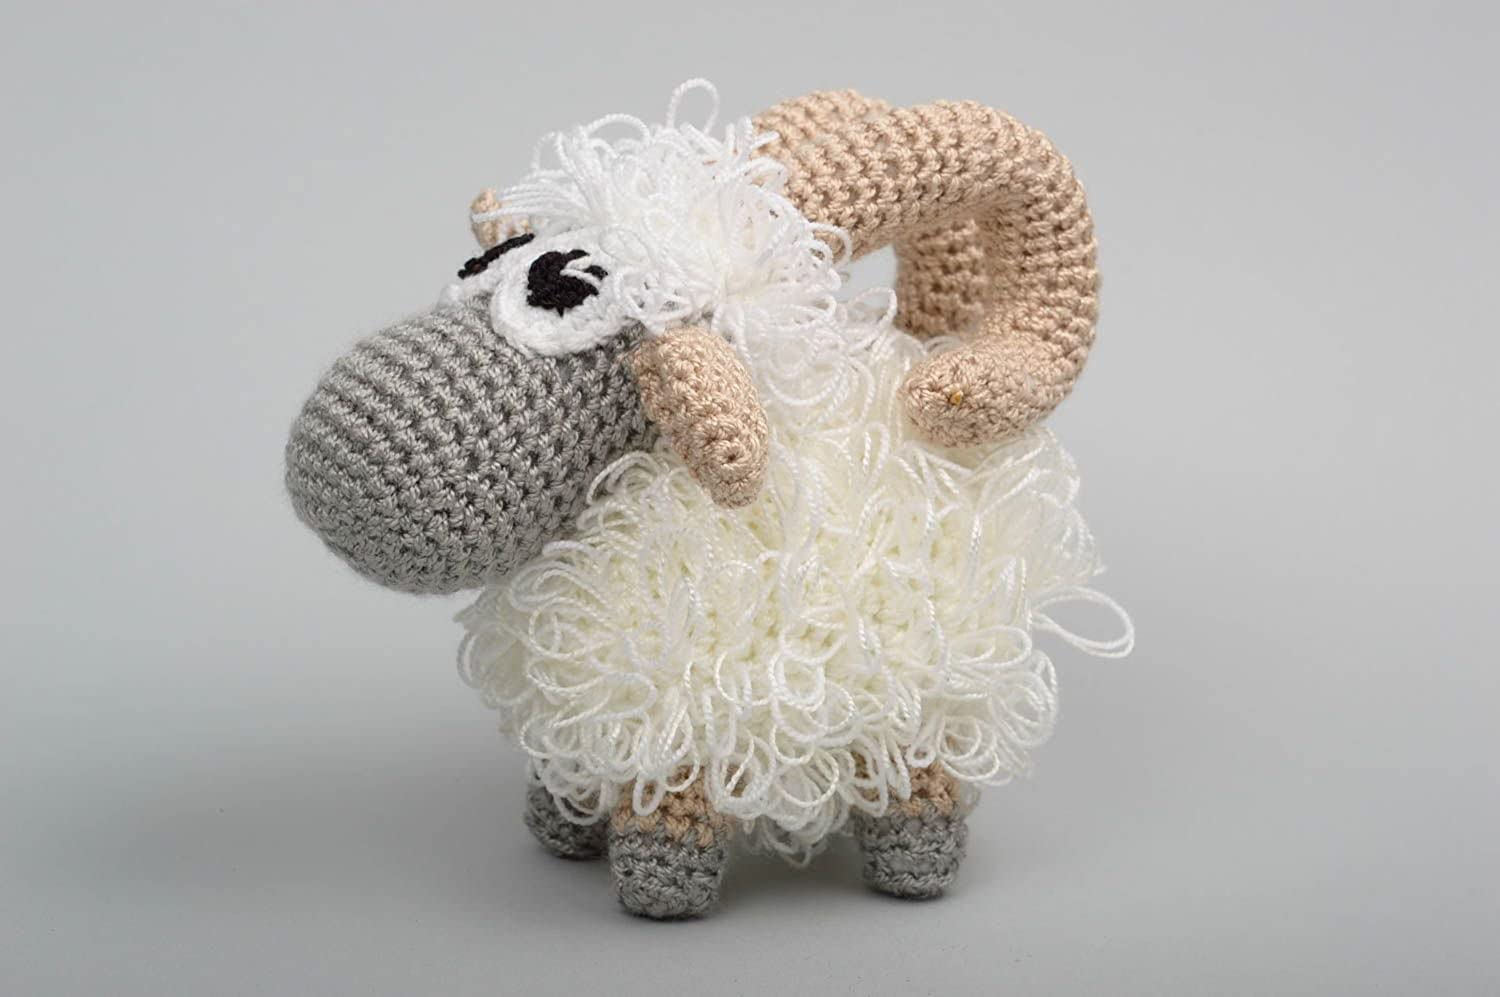 Crochet Stuffed Animals Handmade Toy Cuddly Toys Unique Toys Gifts for Toddlers